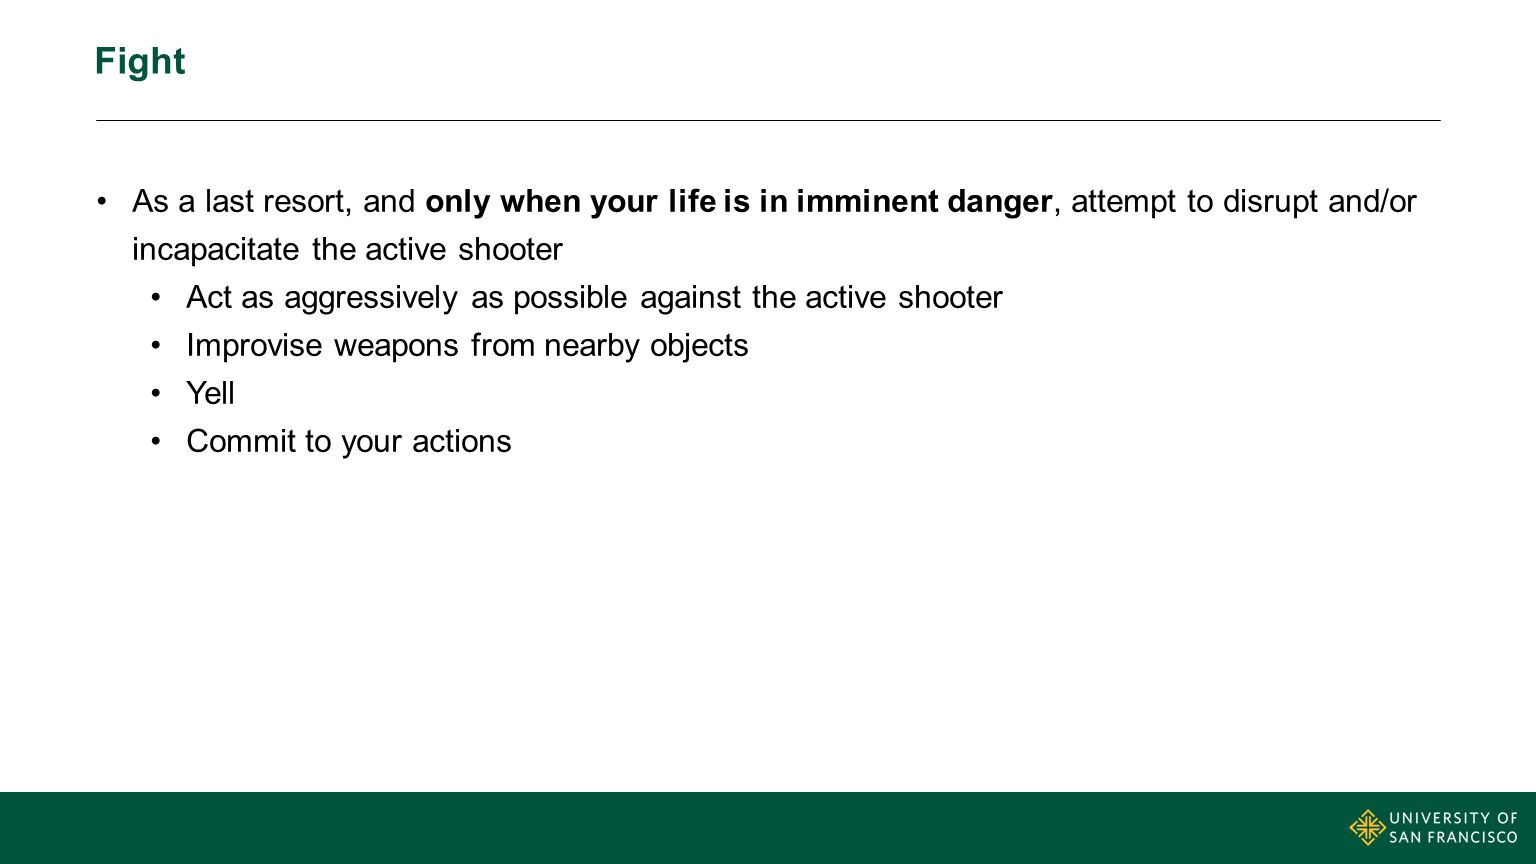 Fight As a last resort, and only when your life is in imminent danger, attempt to disrupt and/or incapacitate the active shooter Act as aggressively a